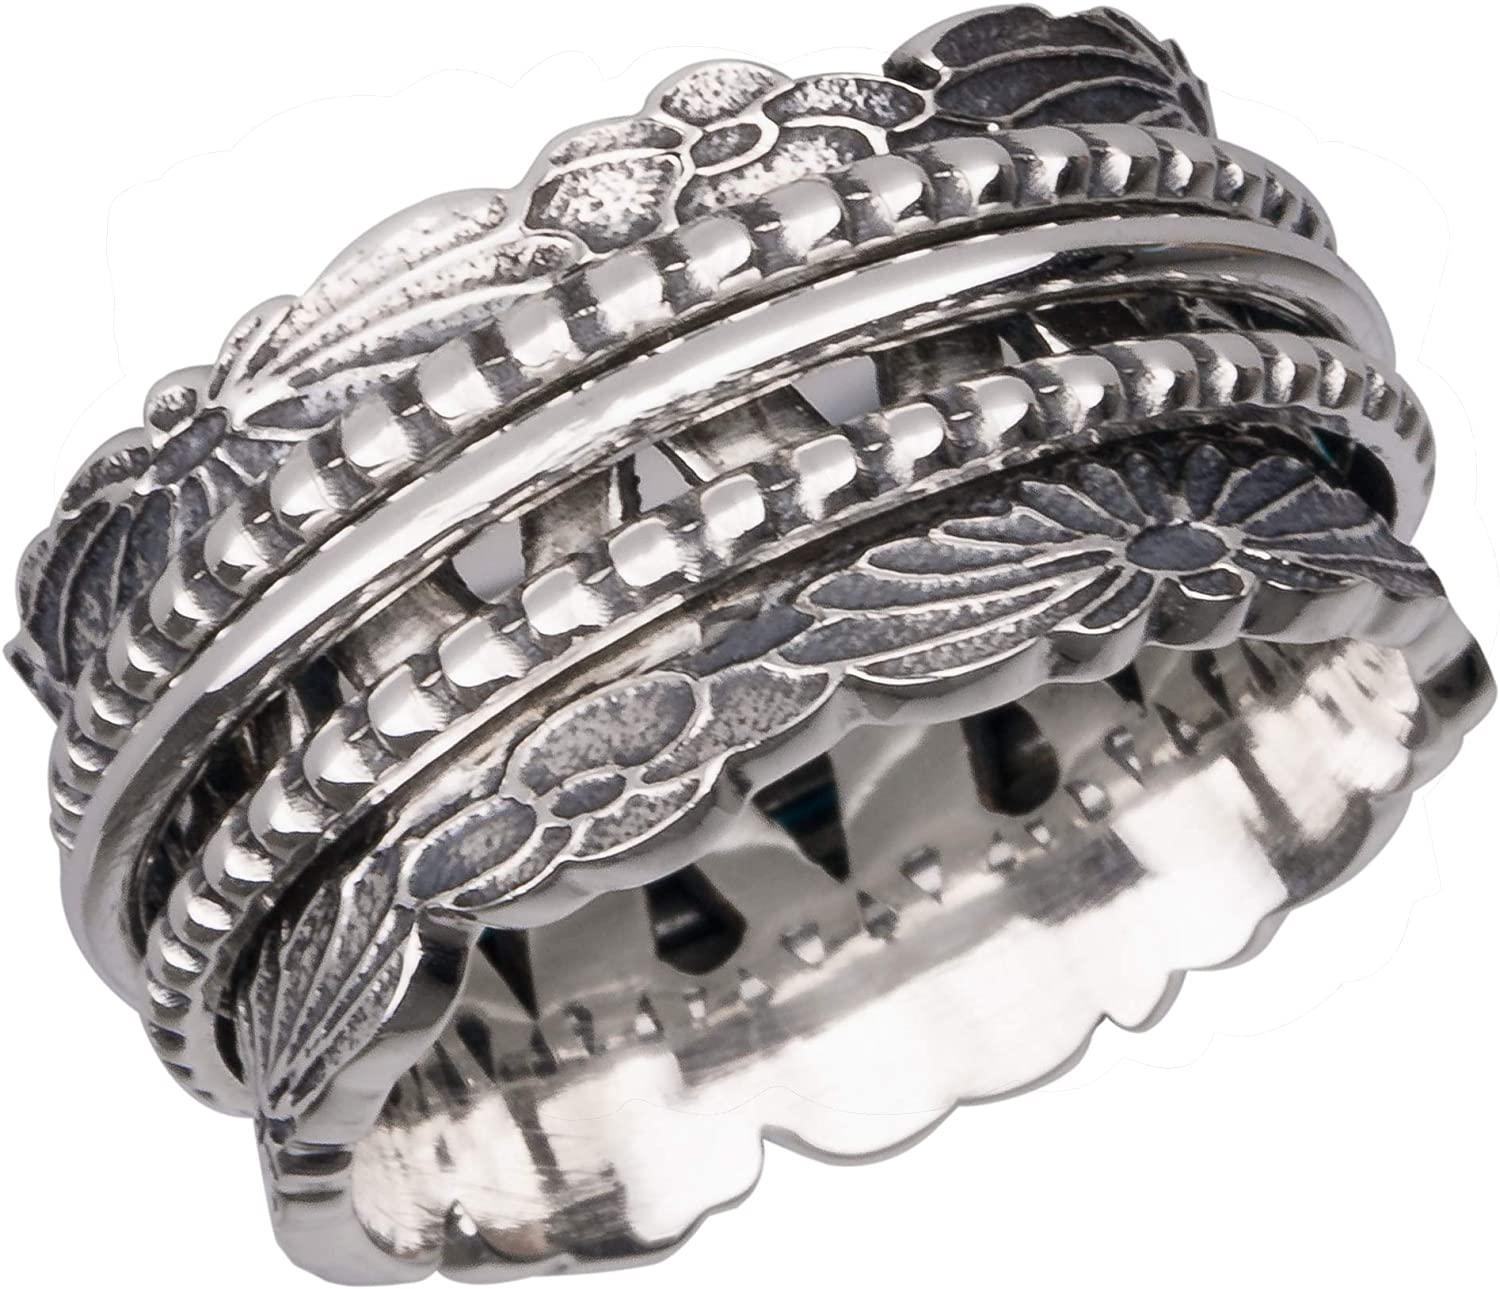 Energy Stone Chrysanthemum Sterling Silver Meditation Spinner Ring with Three Spinners Style SR78